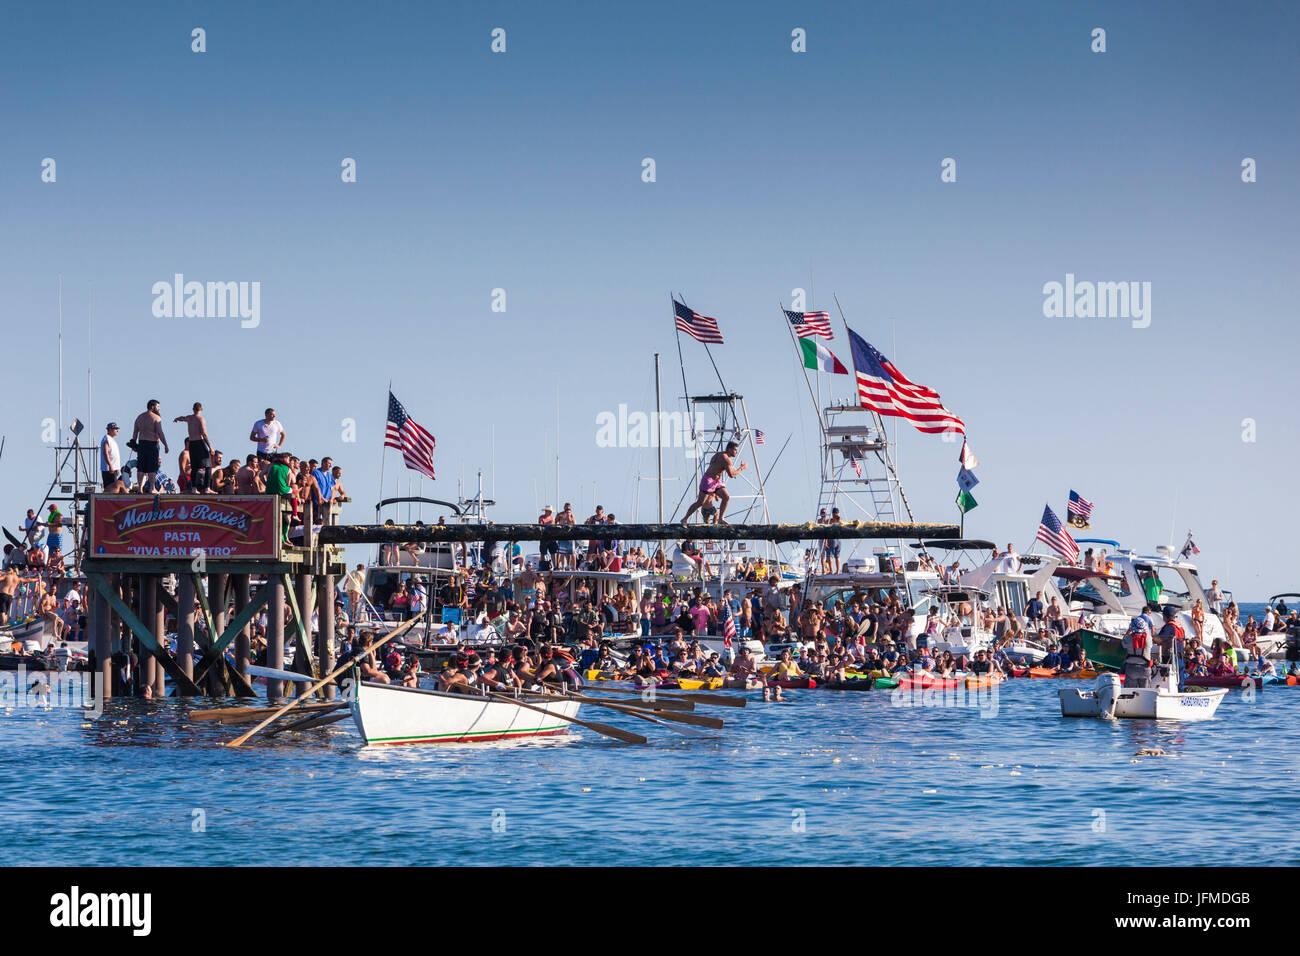 USA, Massachusetts, Cape Ann, Gloucester, St  Peter's Fiesta